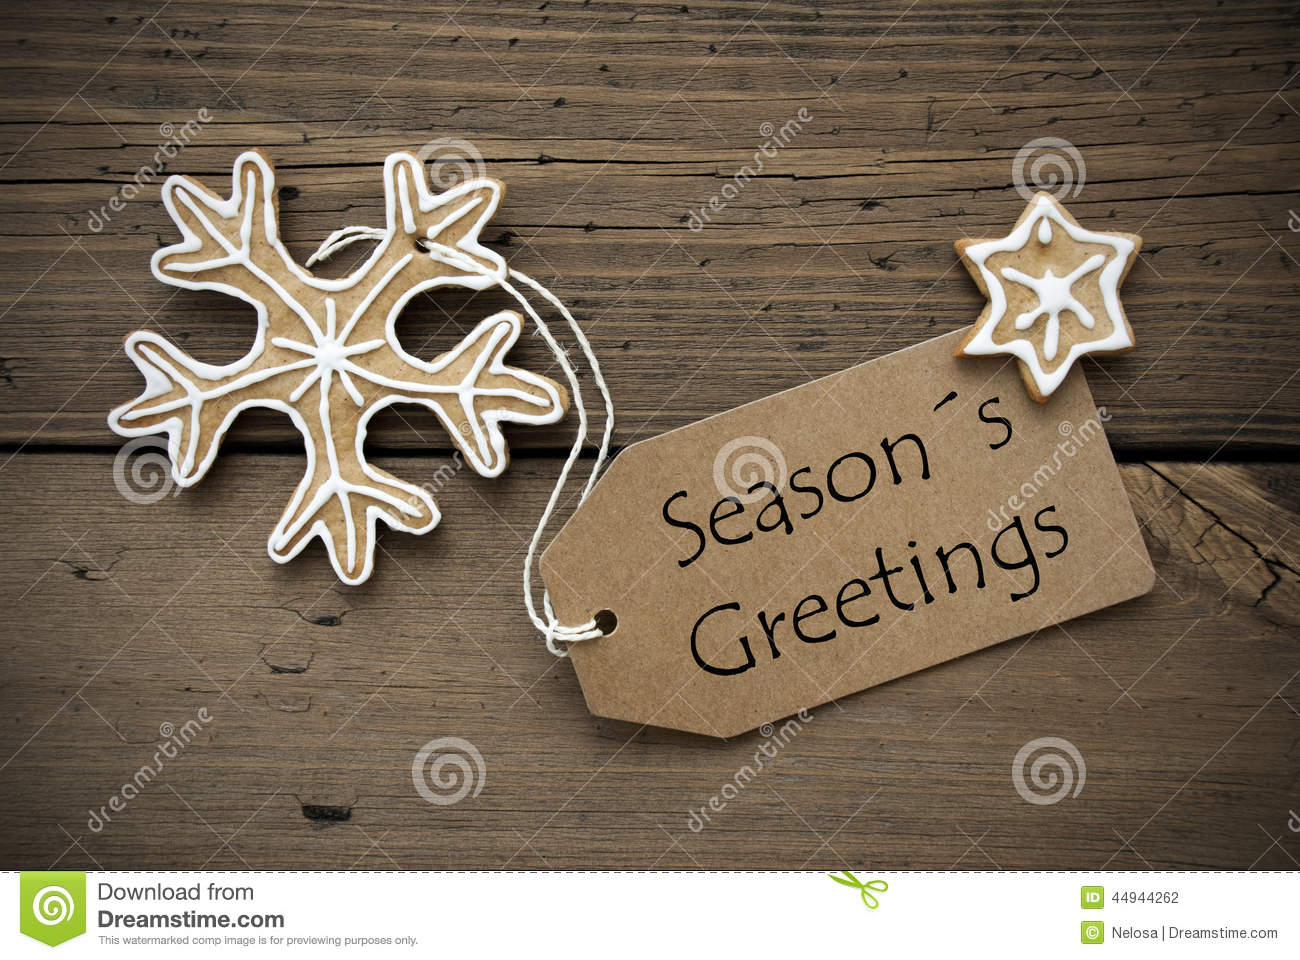 Seasons greetings on a banner with ginger bread cookies stock royalty free stock photo kristyandbryce Choice Image